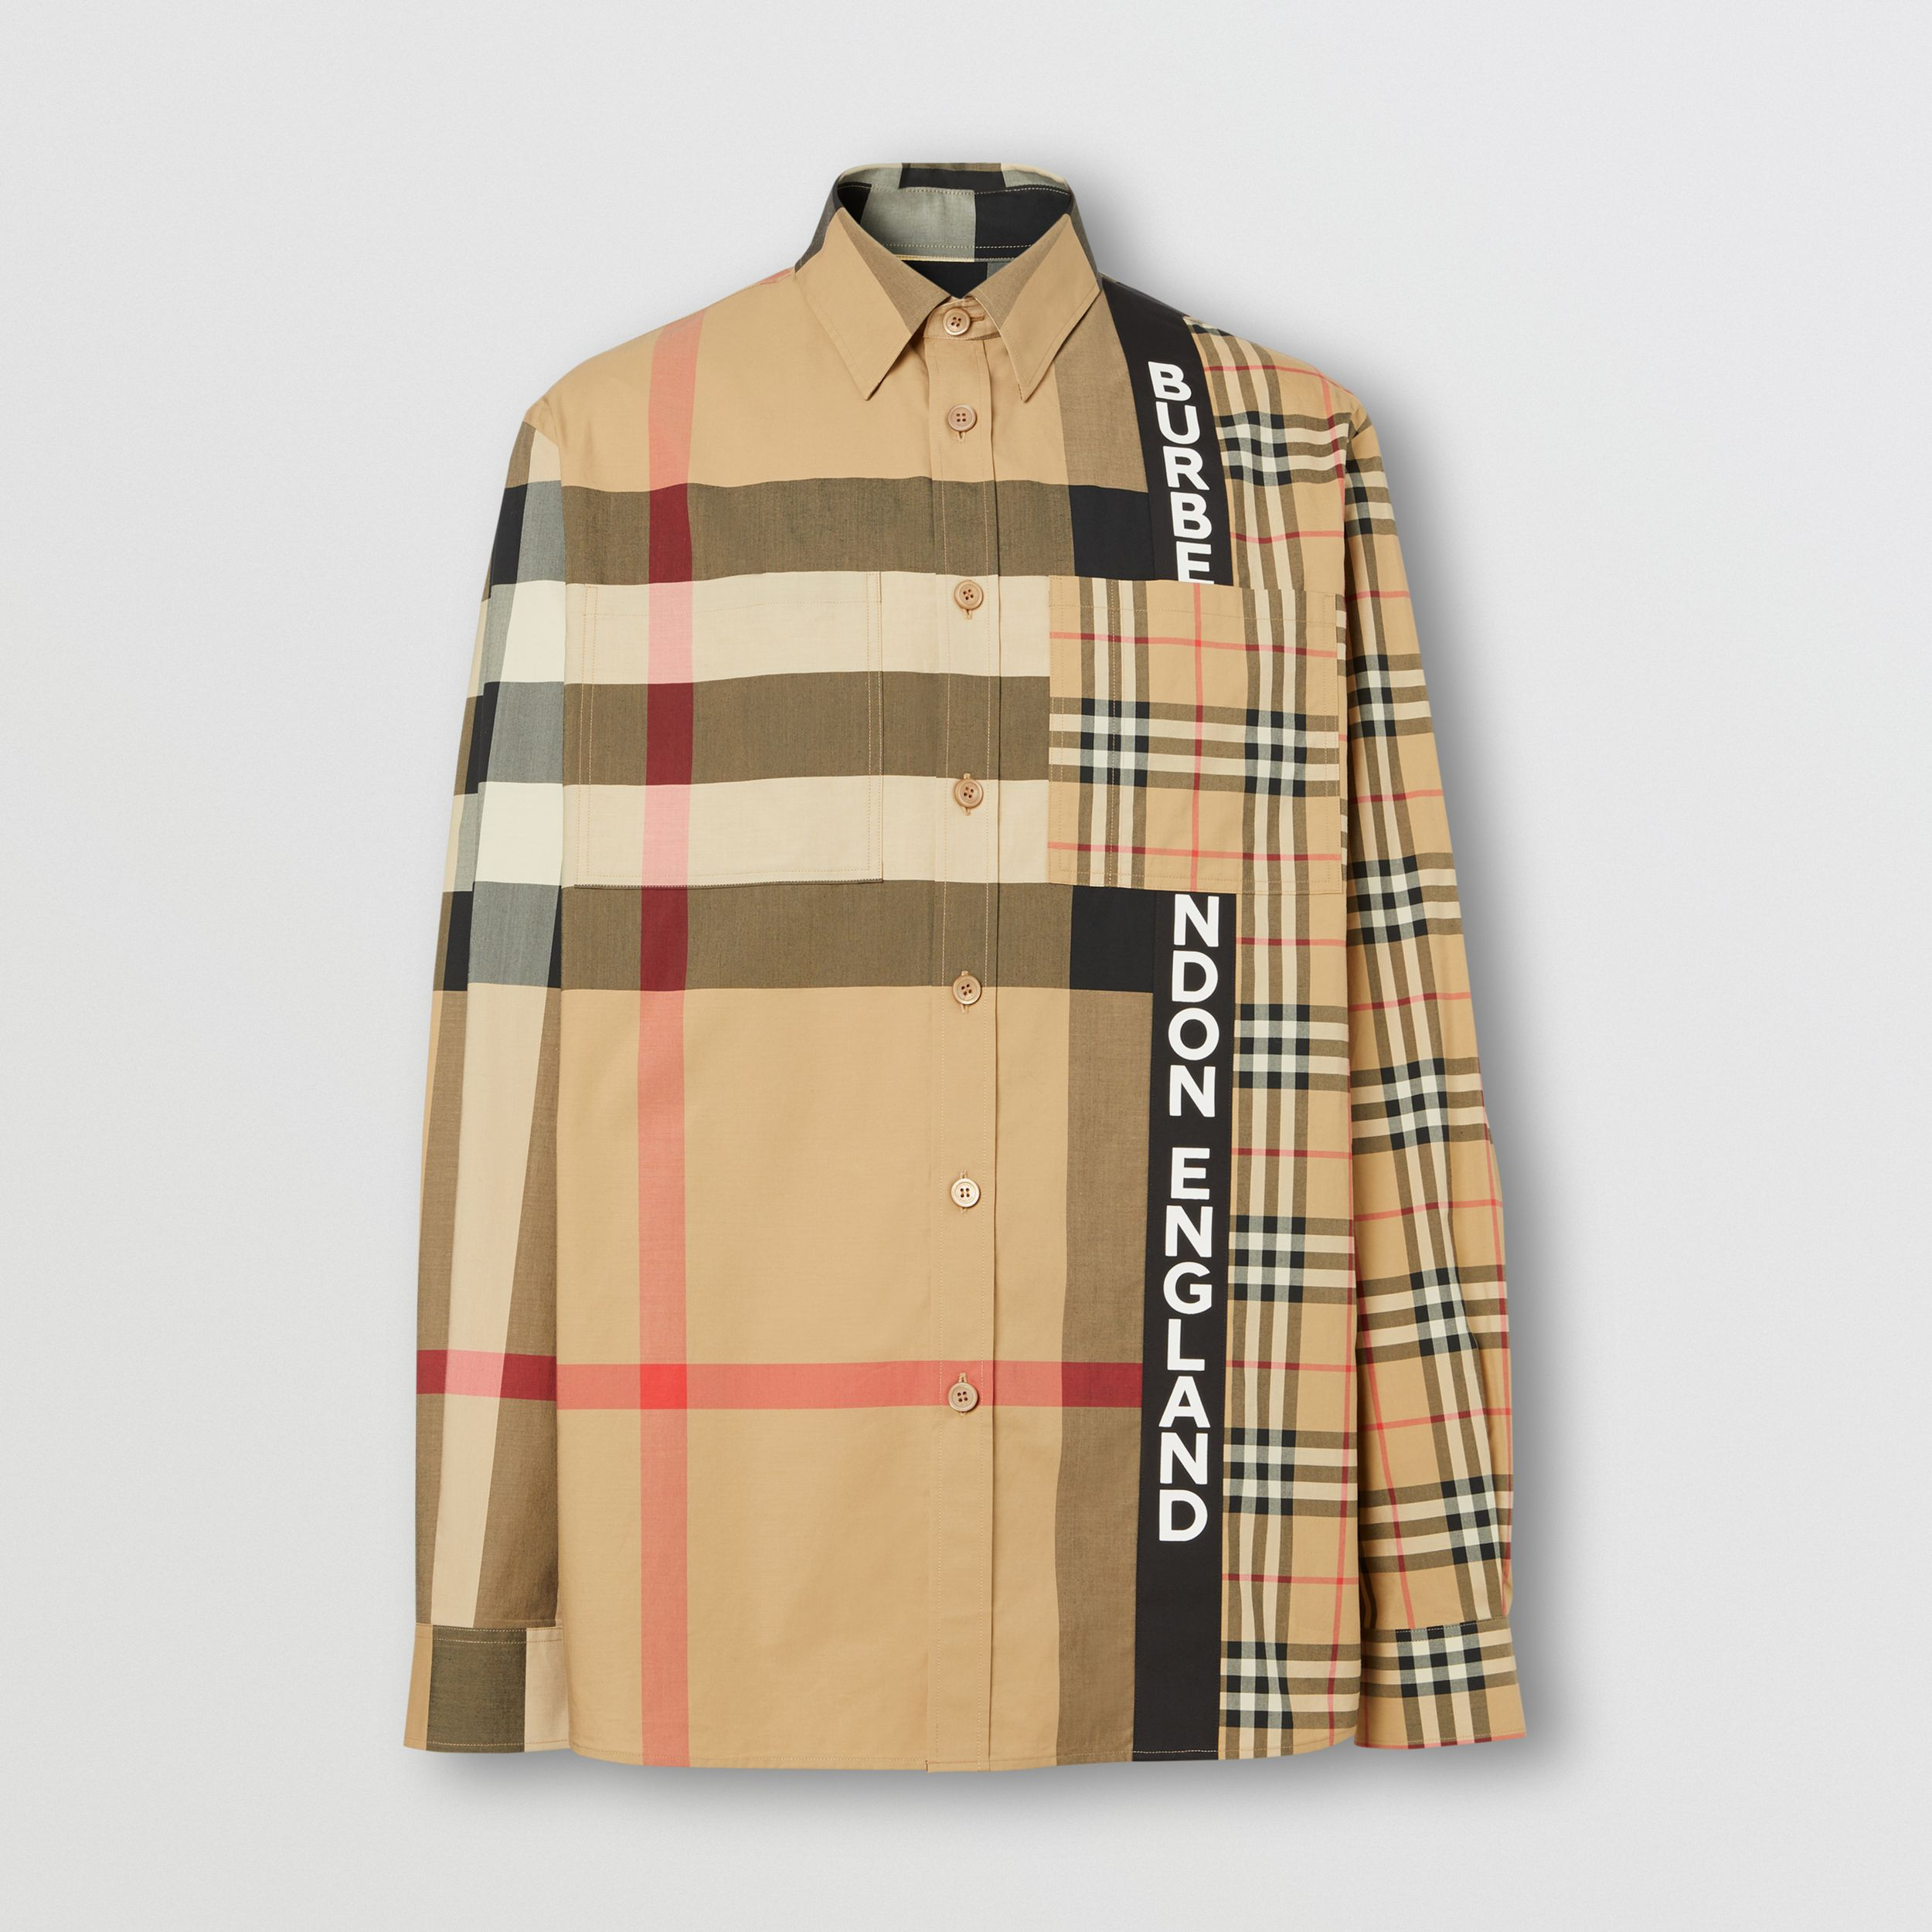 Logo Print Patchwork Check Cotton Oversized Shirt in Archive Beige - Men | Burberry Canada - 4